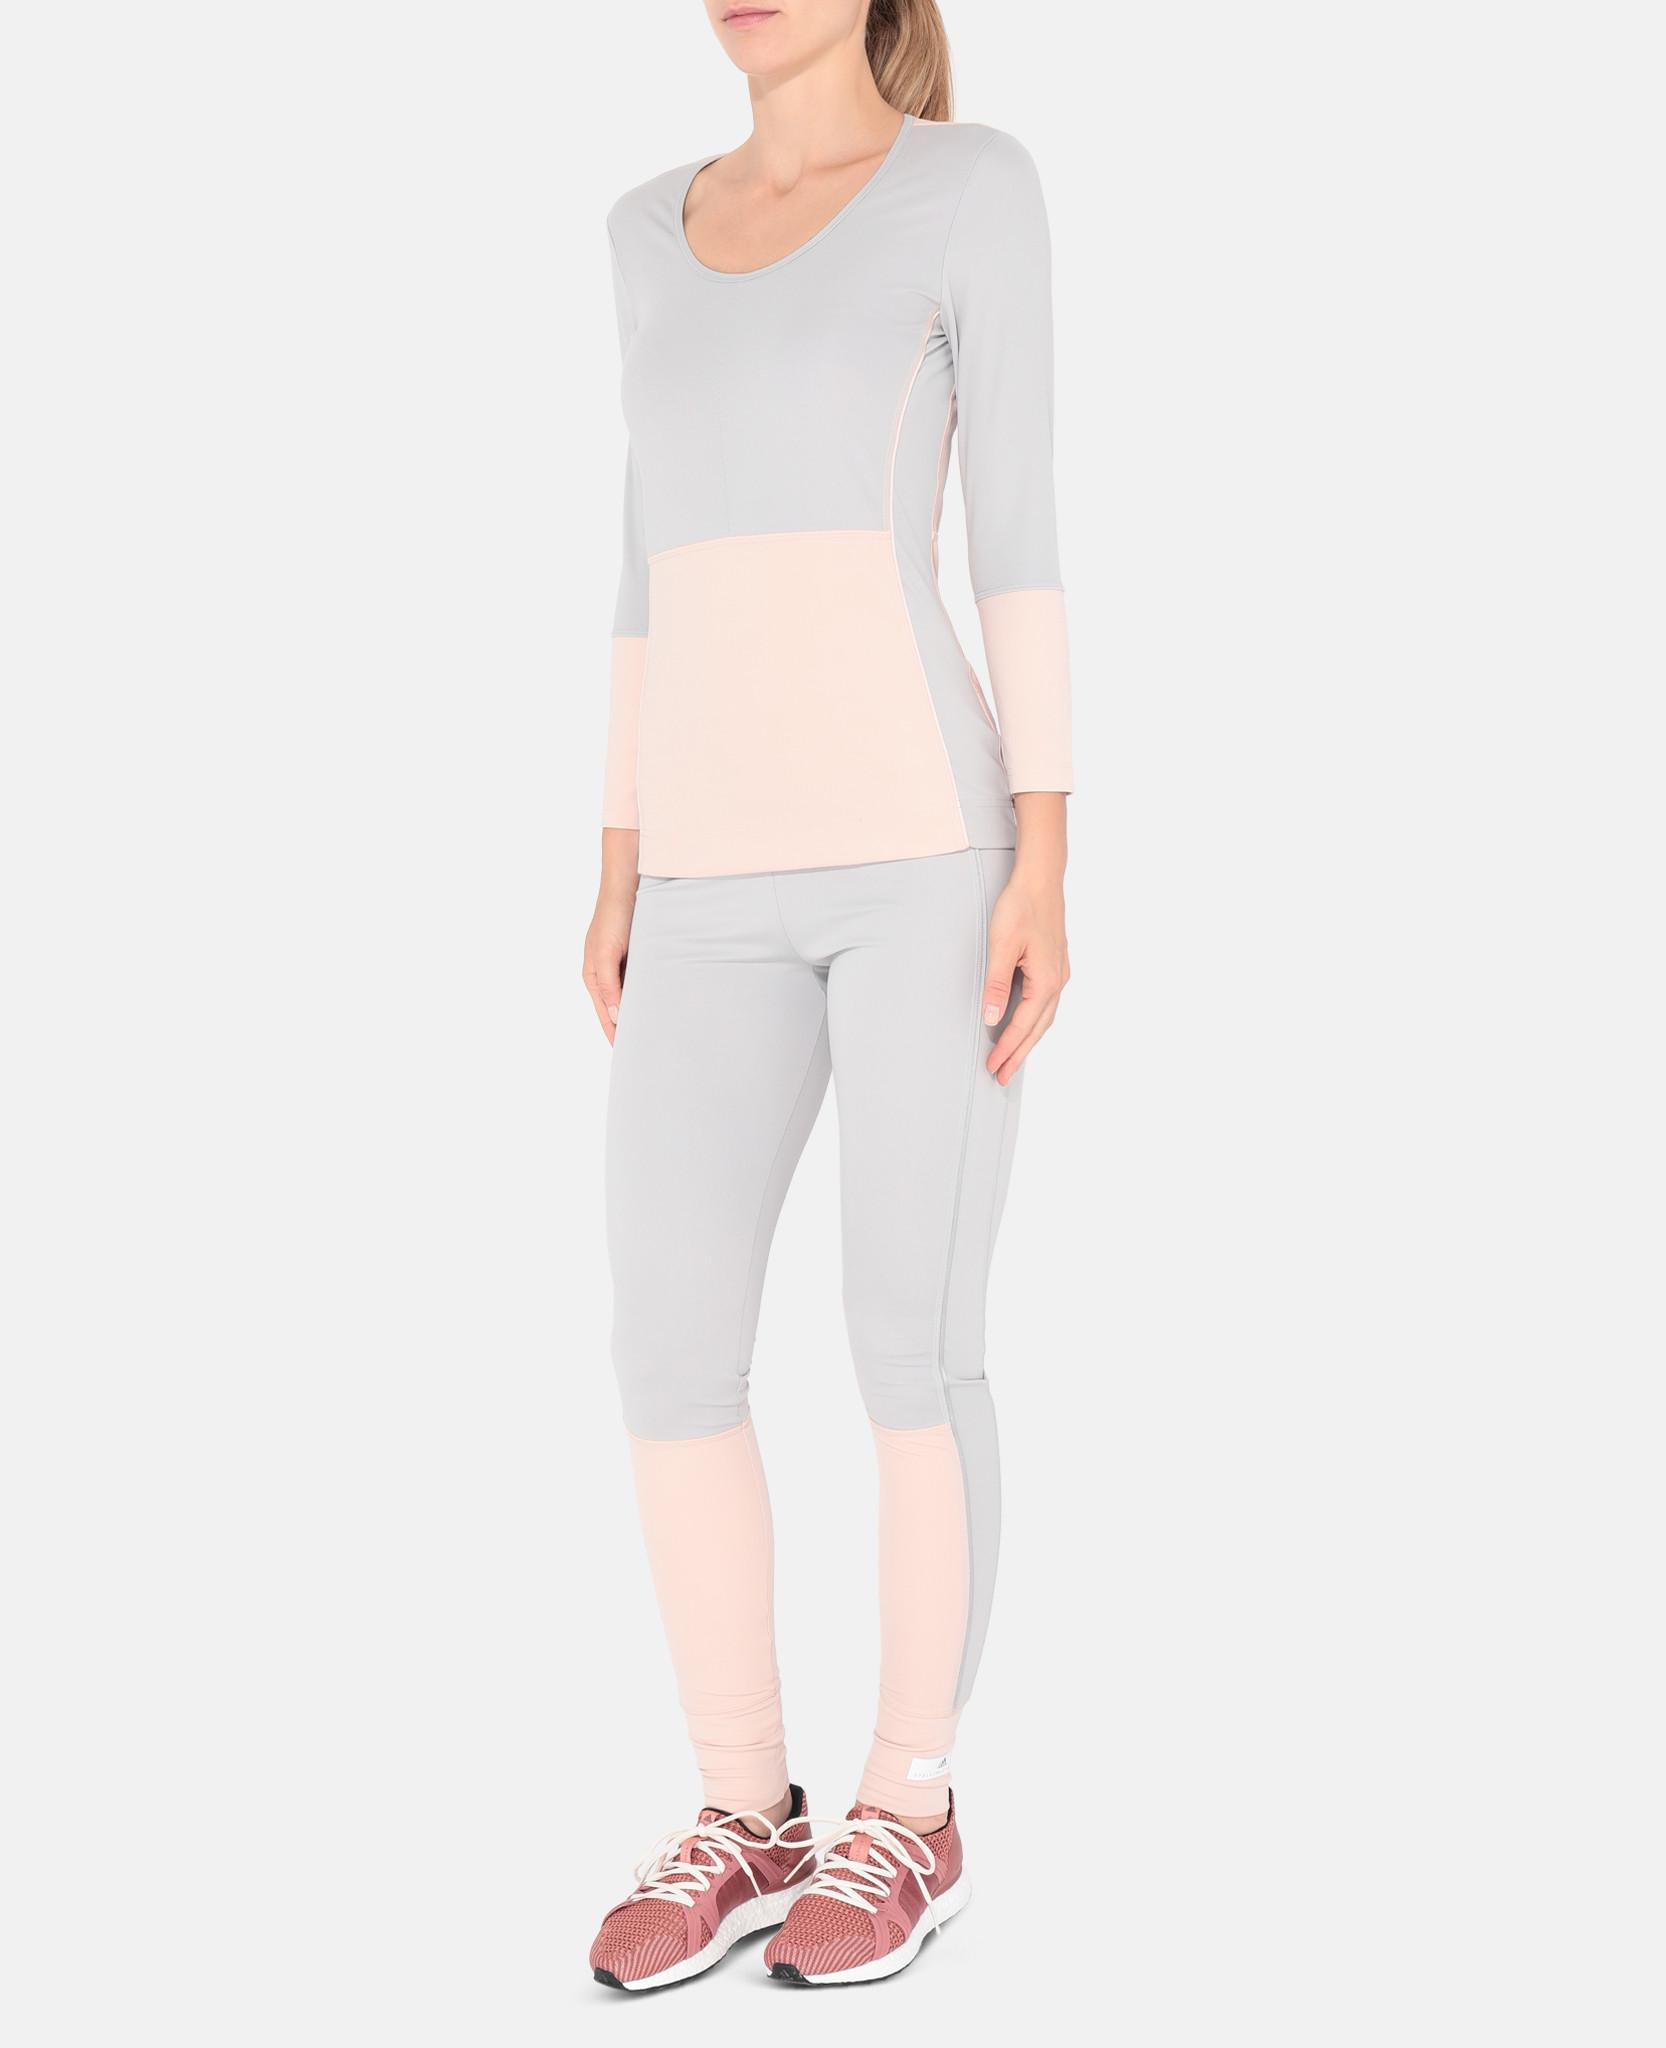 Lyst Adidas By Stella Mccartney Pink Yoga Comfort Tights In Gray